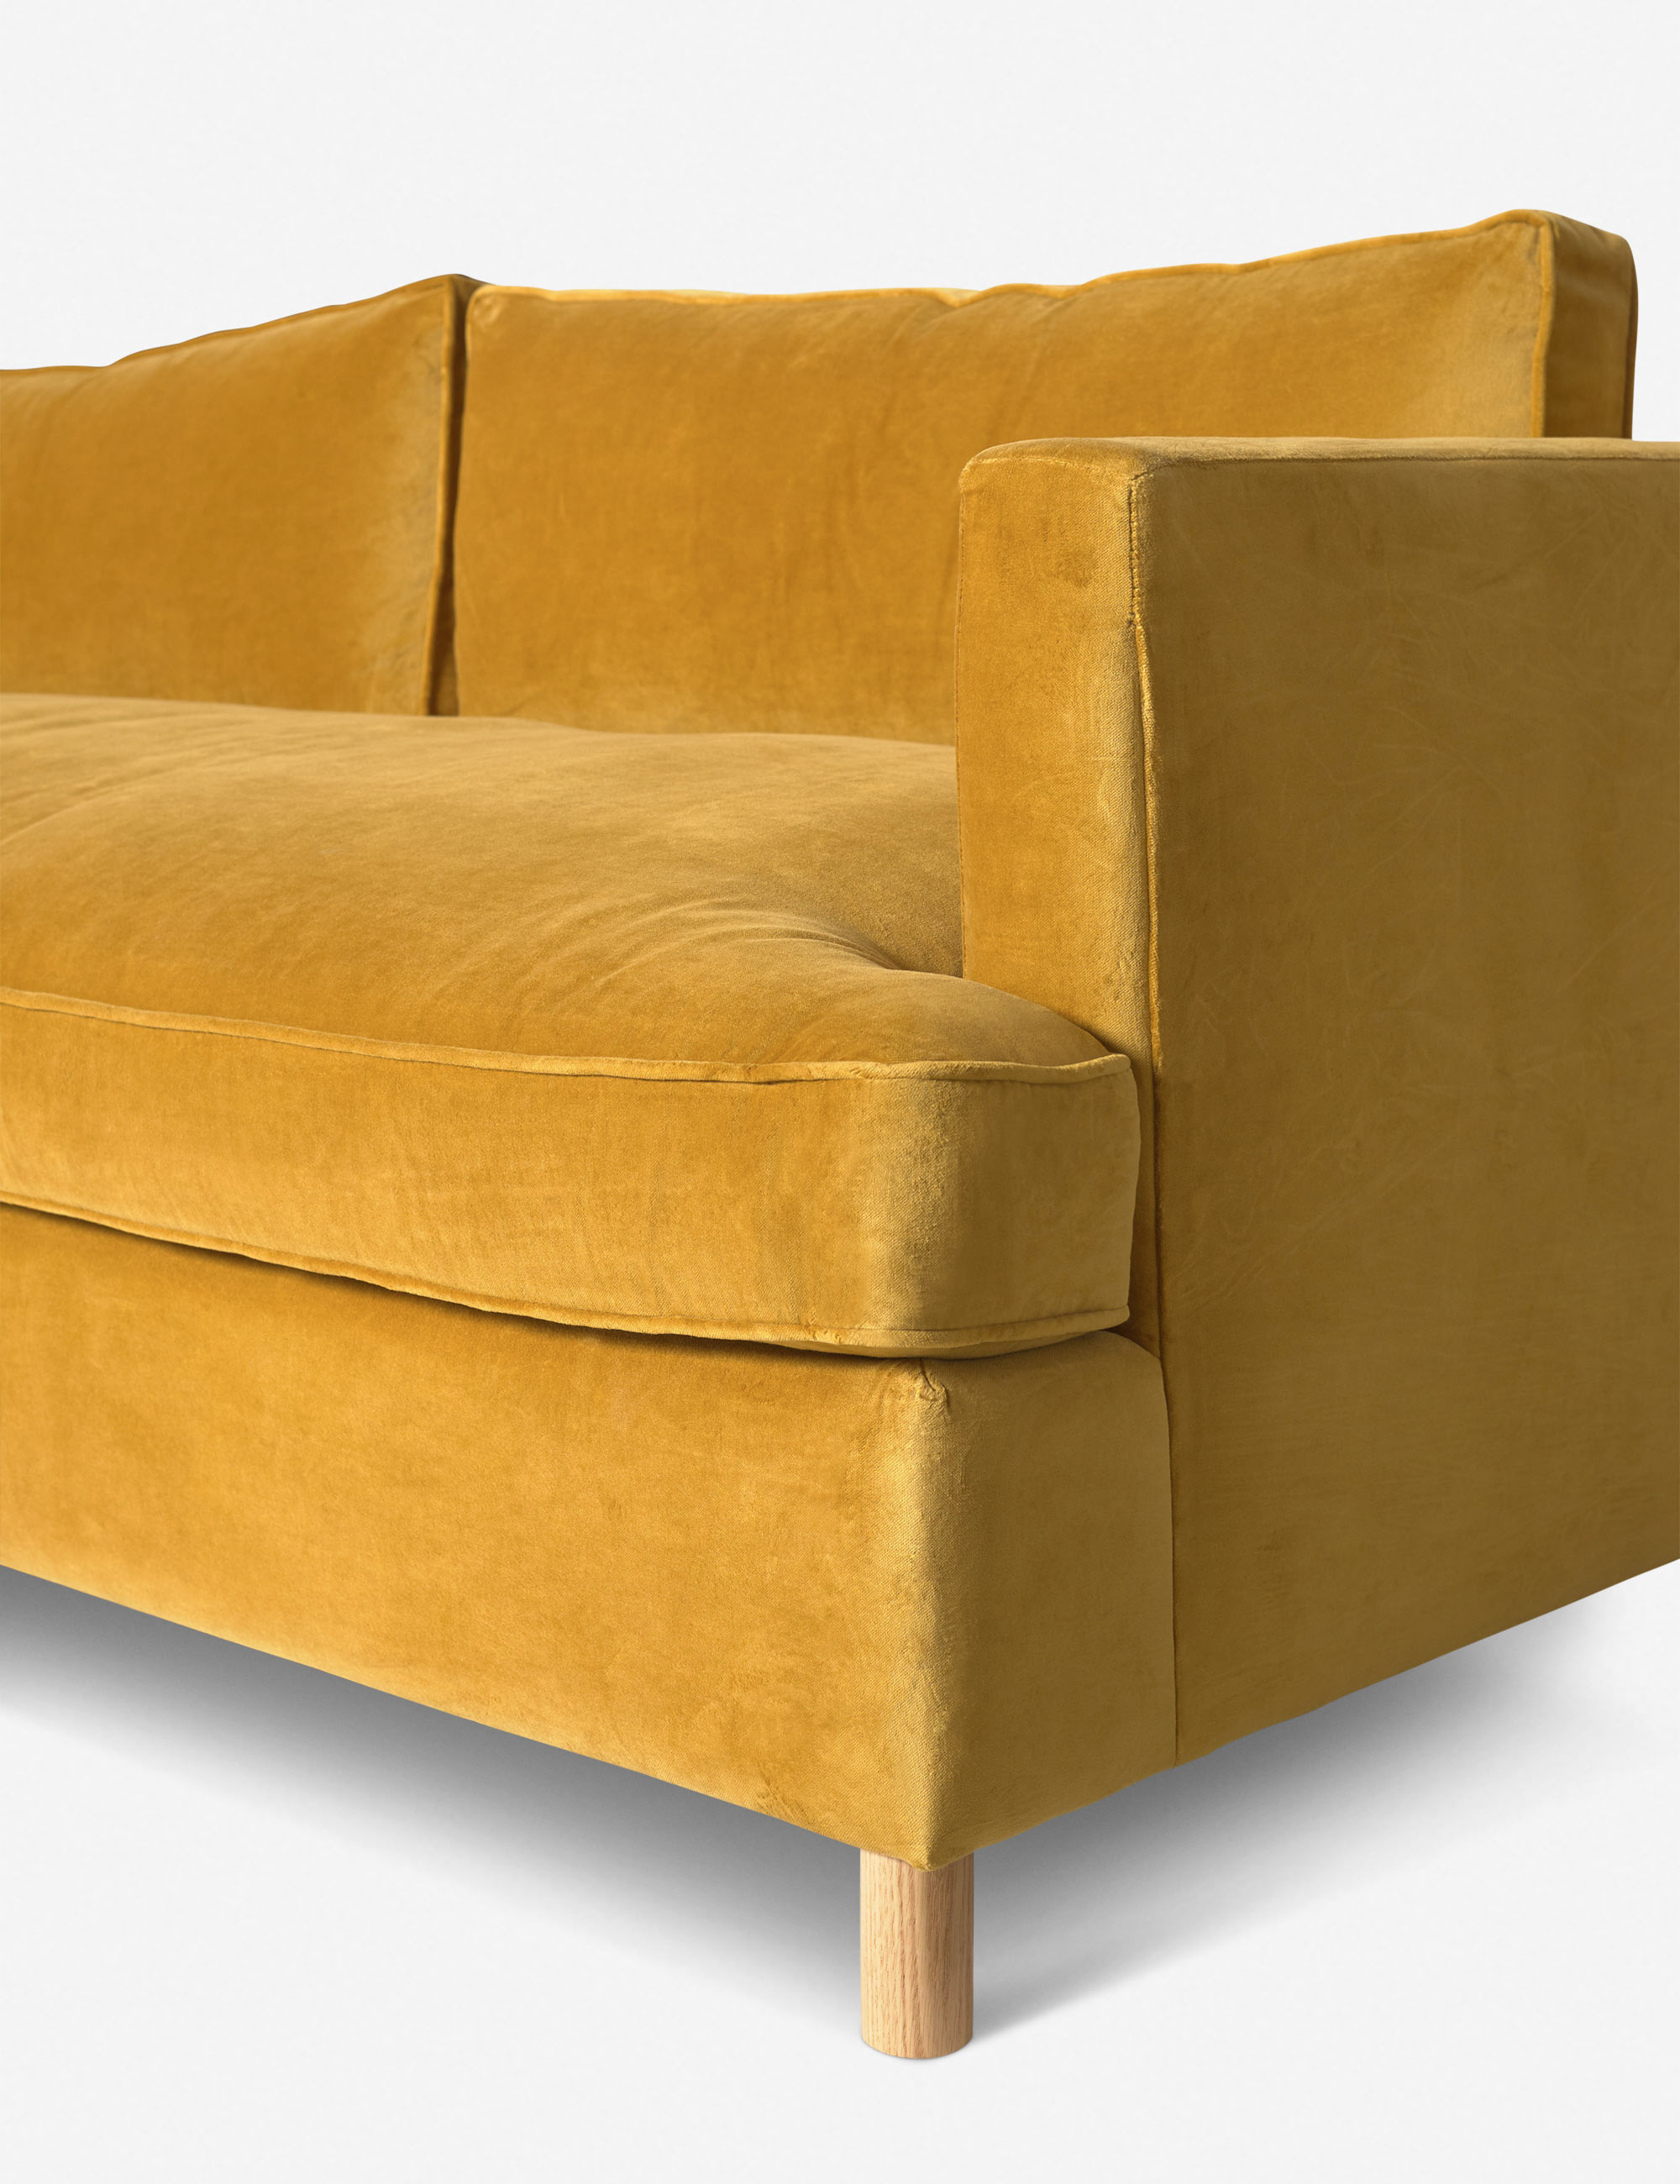 GINNY_MACDONALD_BELMONT-SOFA-golden-rod-2